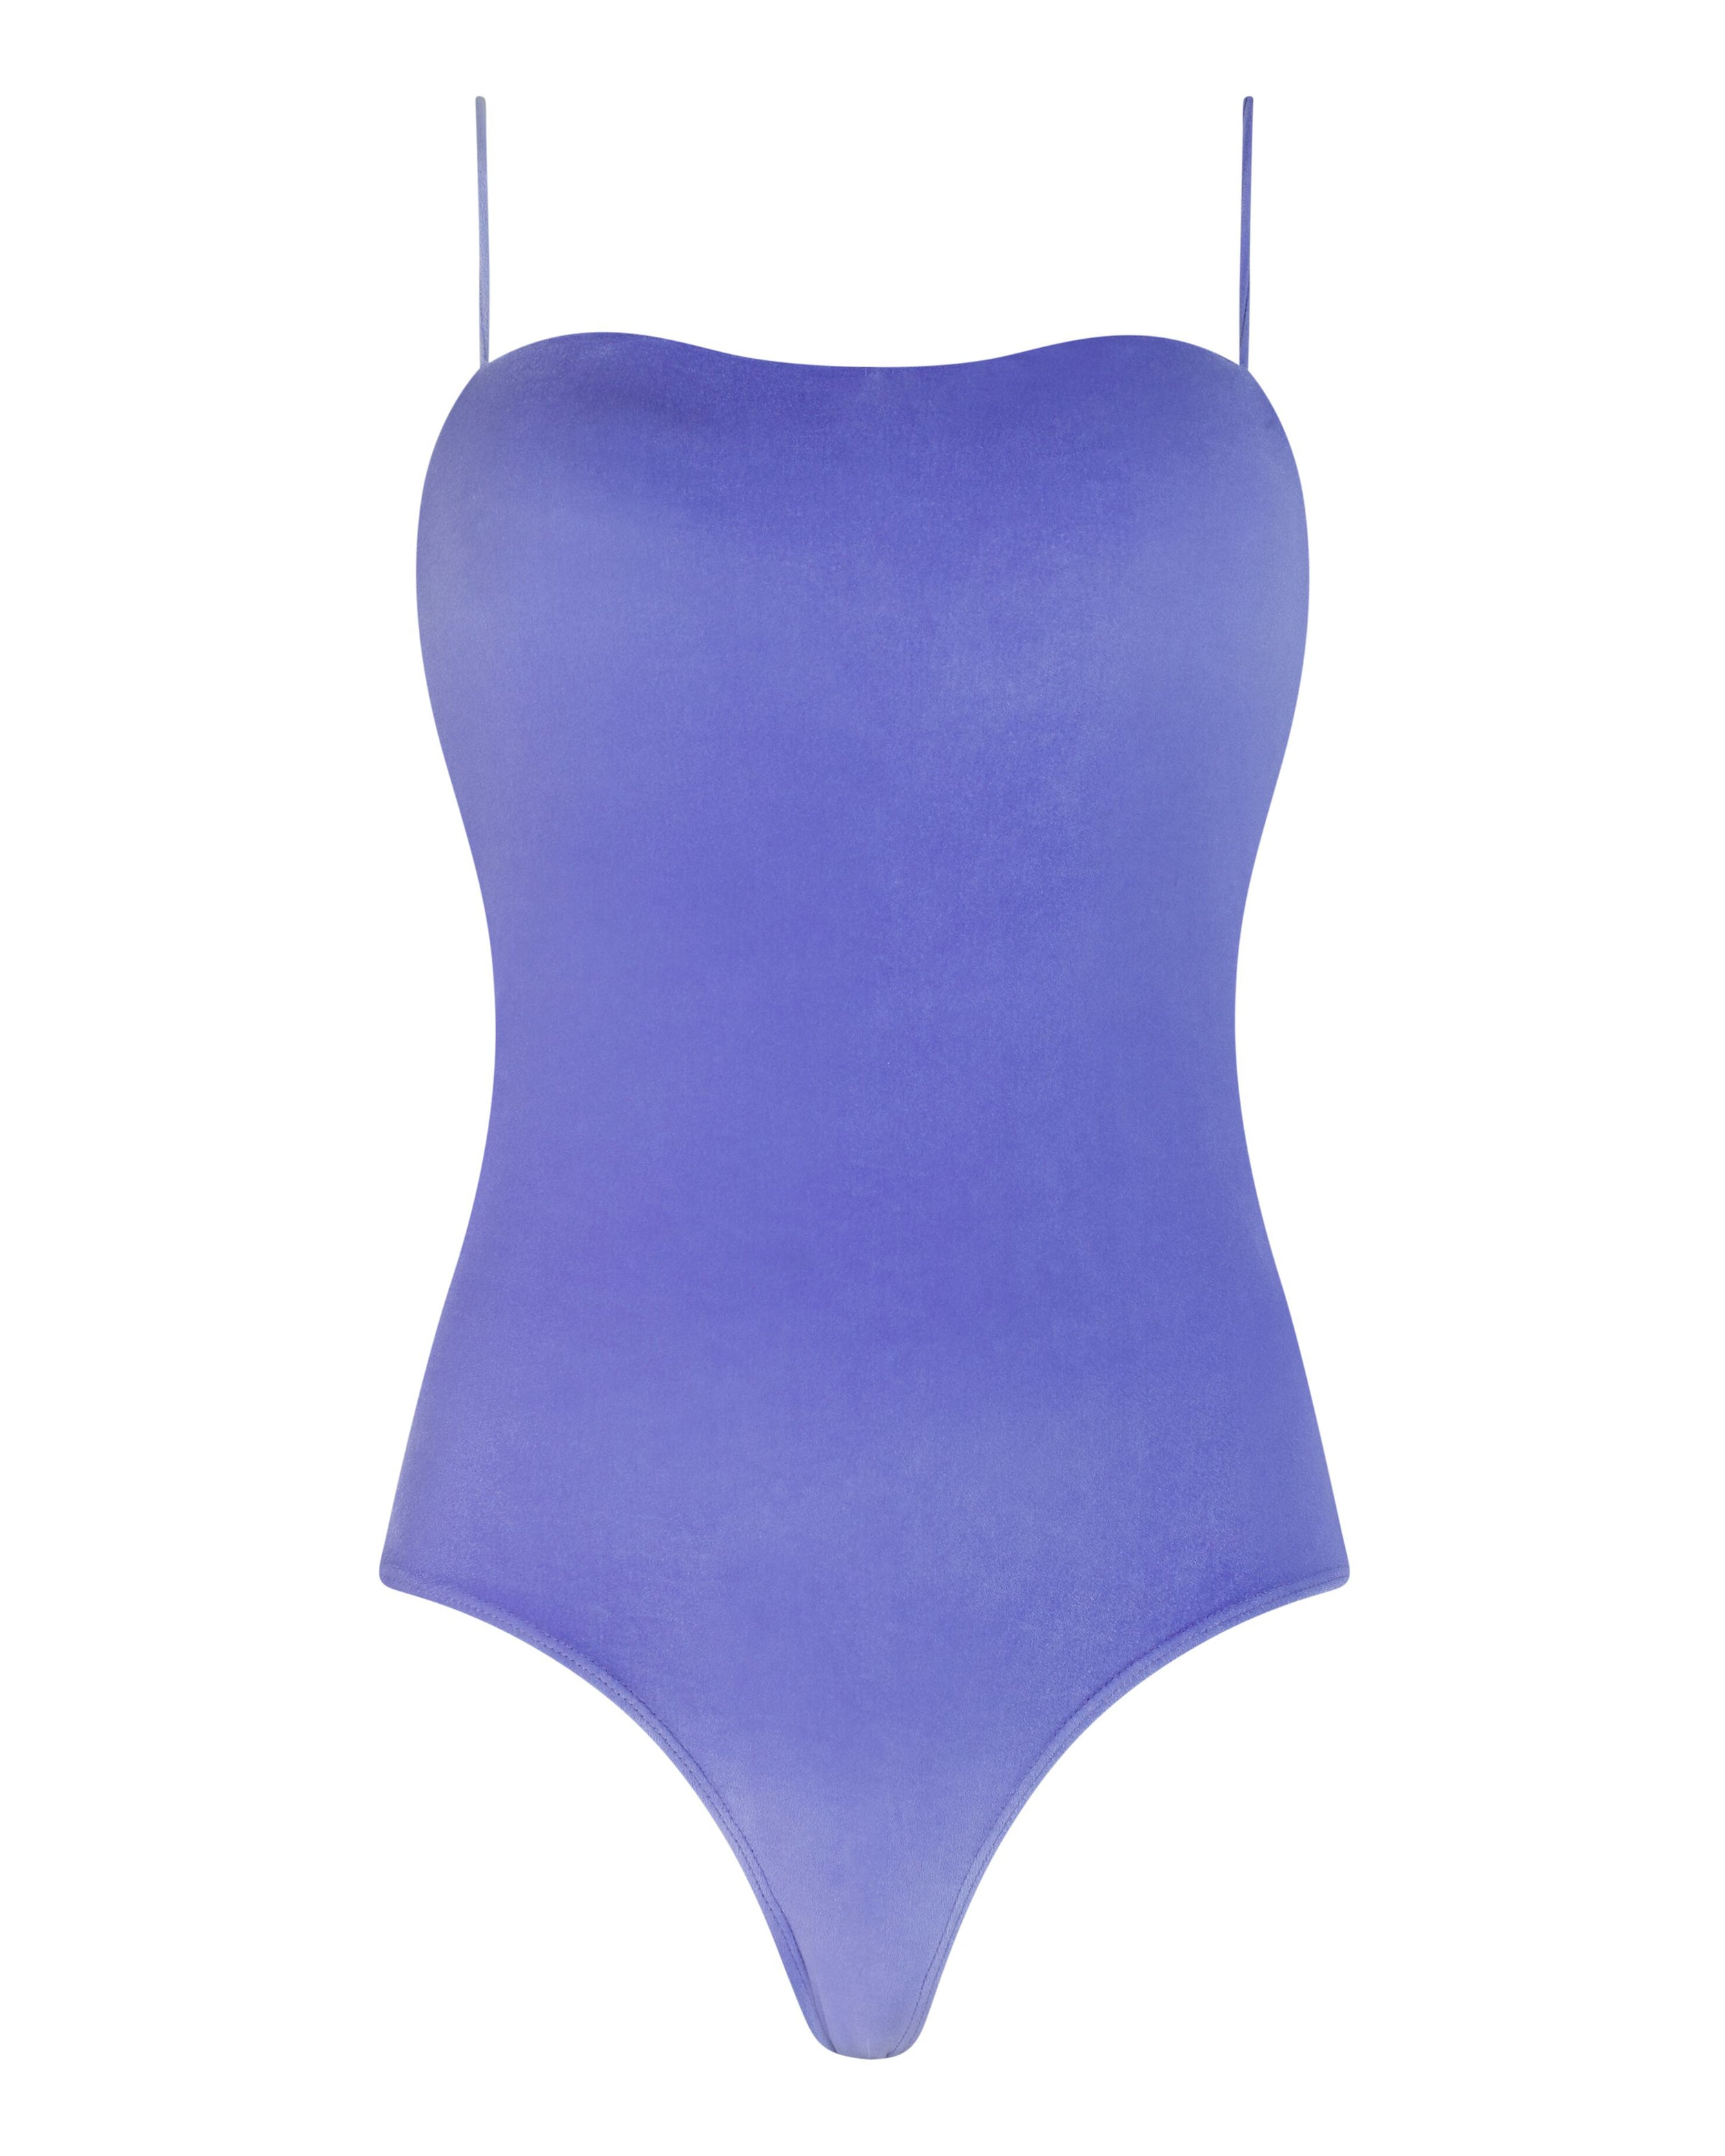 Sting Ray Swimsuit in Lilac Velvet